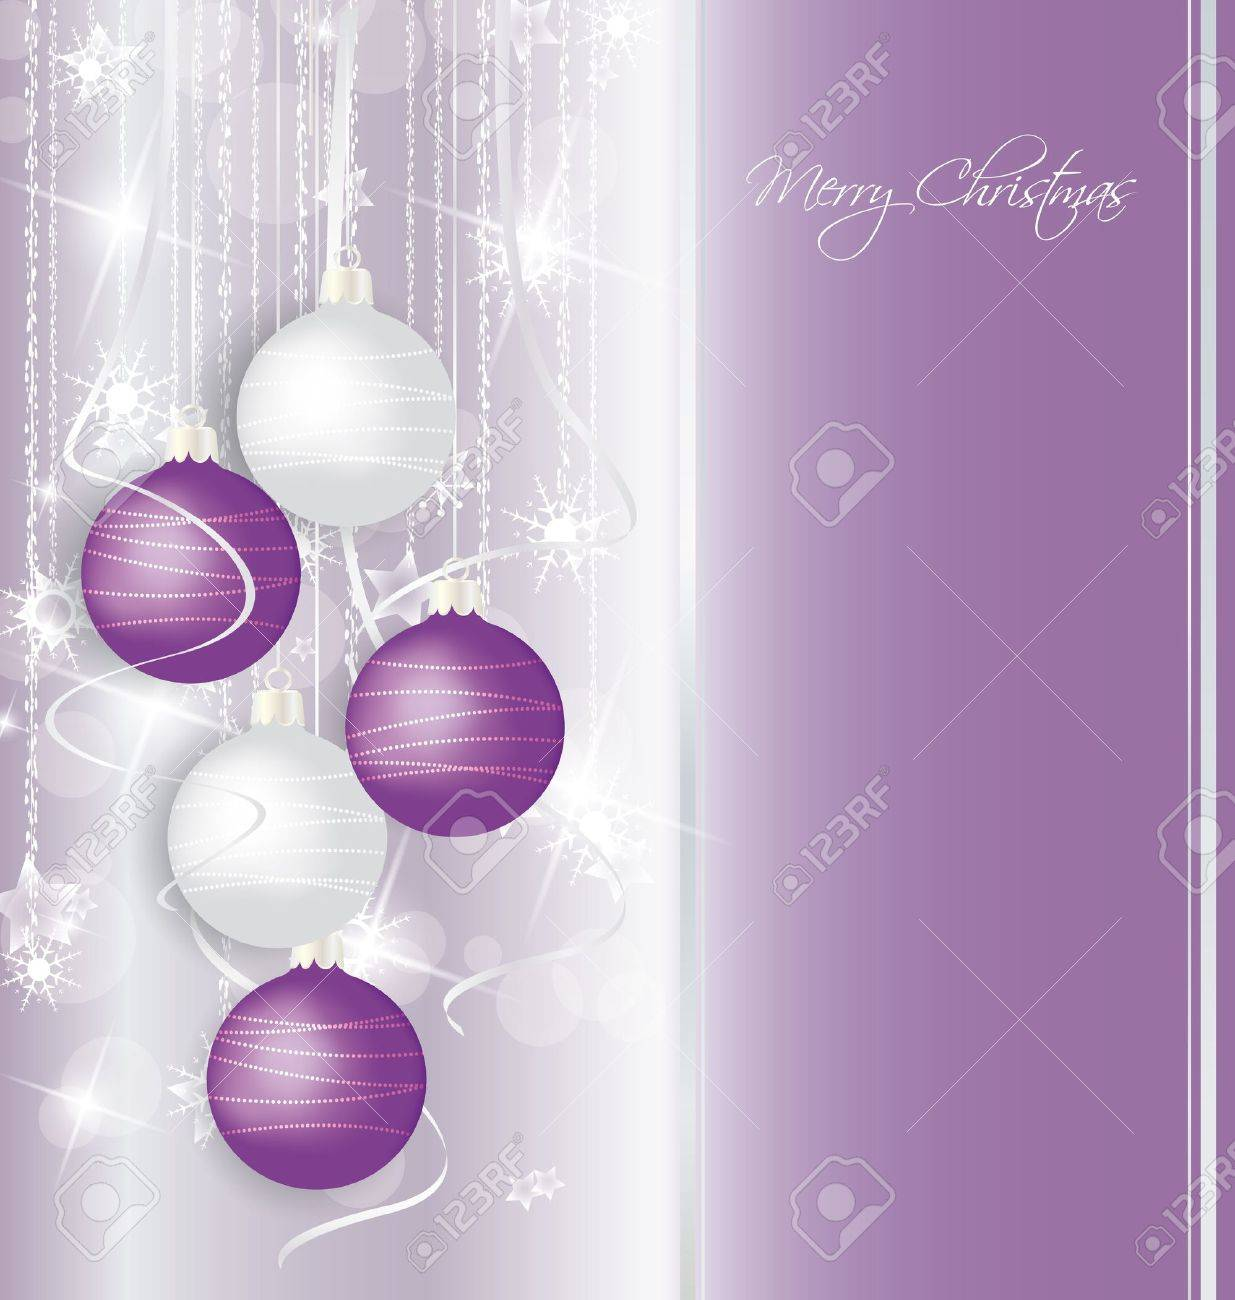 elegant Christmas background with purple and white  balls Stock Vector - 14618413